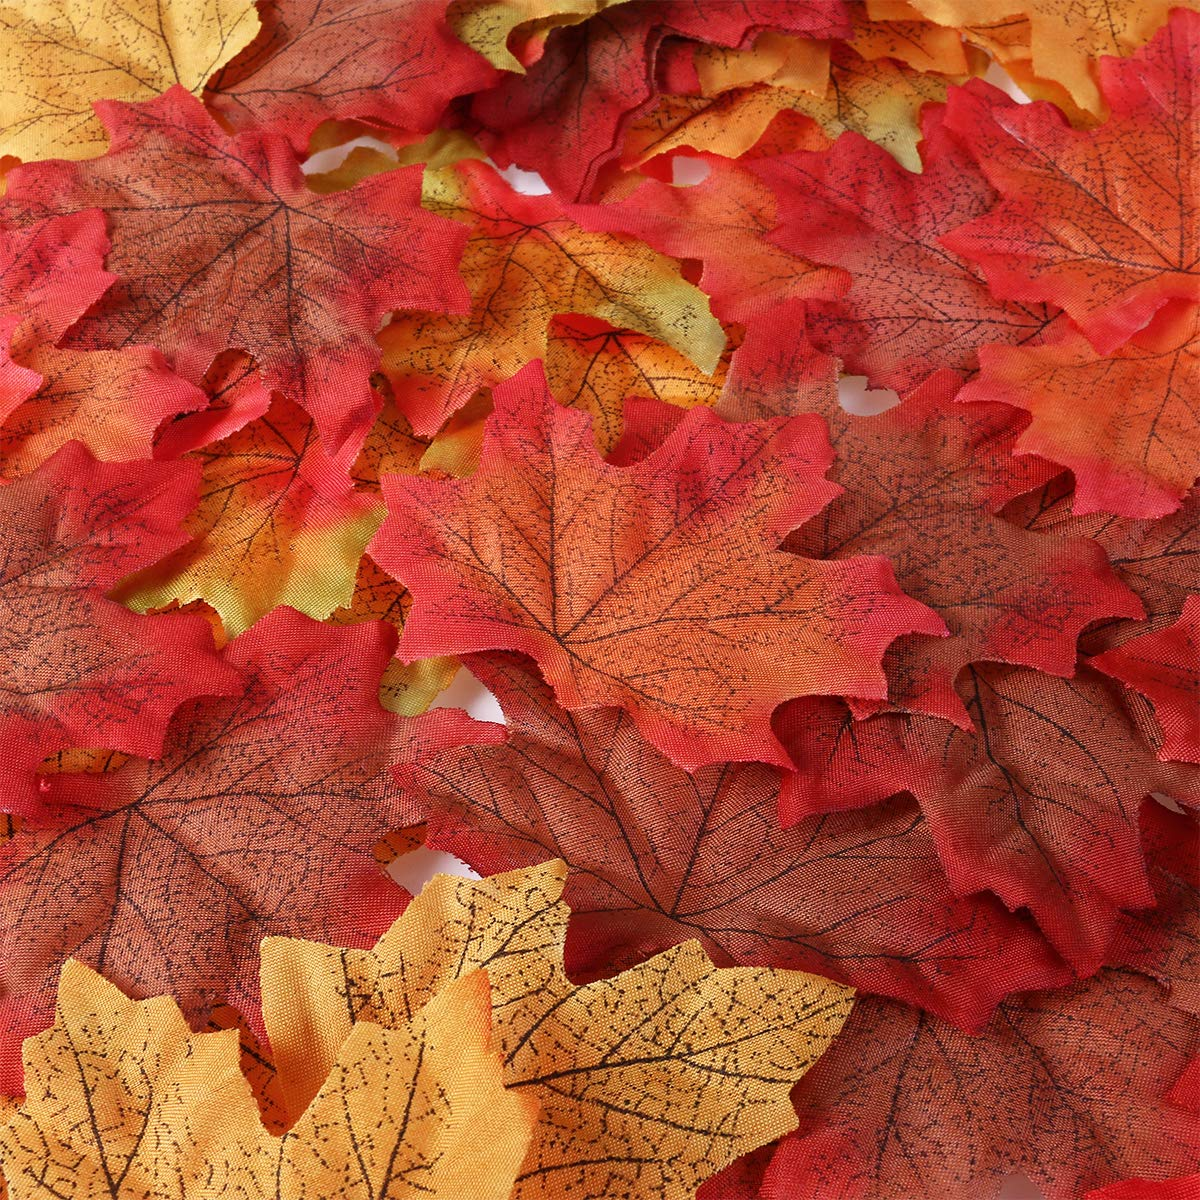 Unomor 190Assortiti Artificiale Maple Leaves in 2Misure Thanksgiving Day & Wedding Decorations